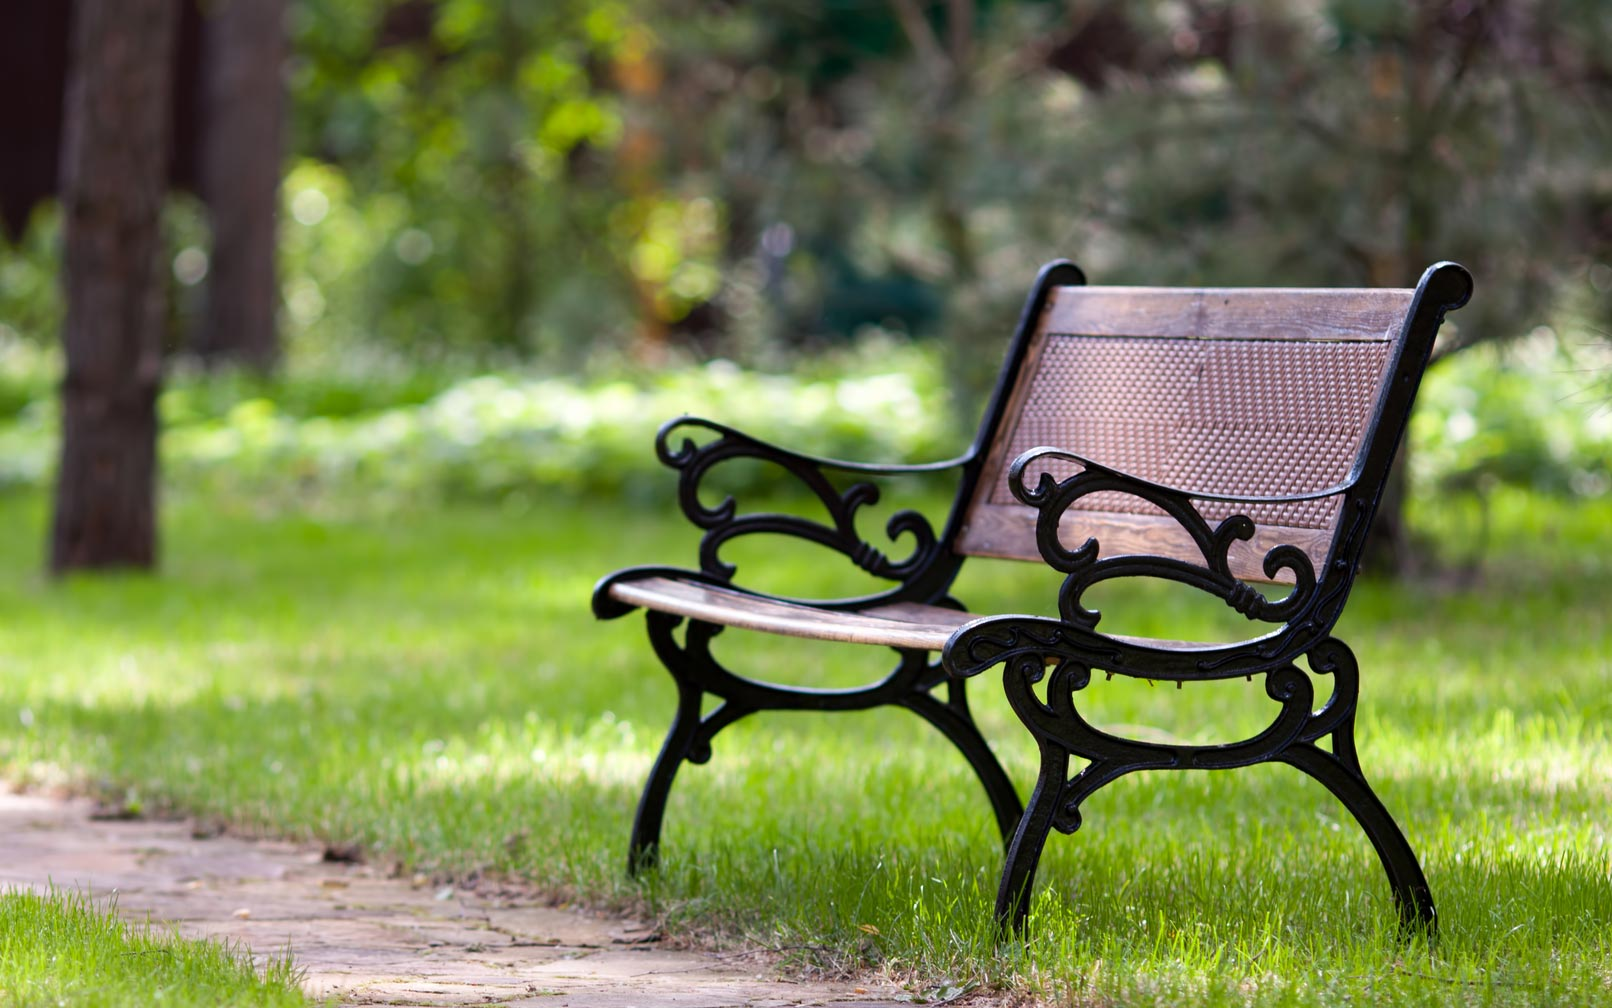 ADA Compliance For Outdoor Benches: Here's What You Need To Know